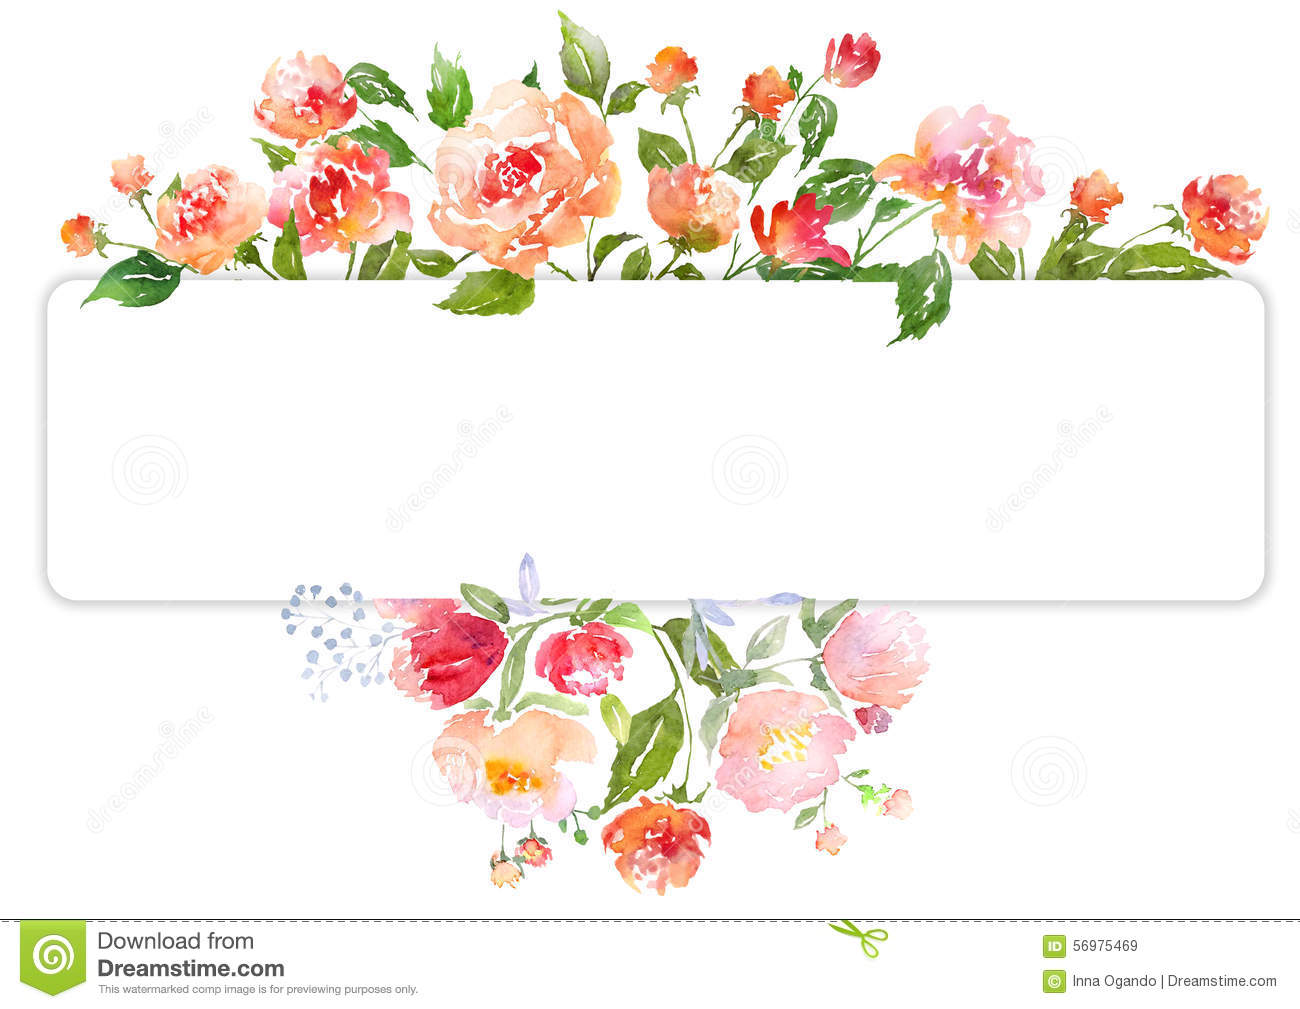 Free watercolor flower clipart image freeuse download Free watercolor flower clipart - ClipartFest image freeuse download